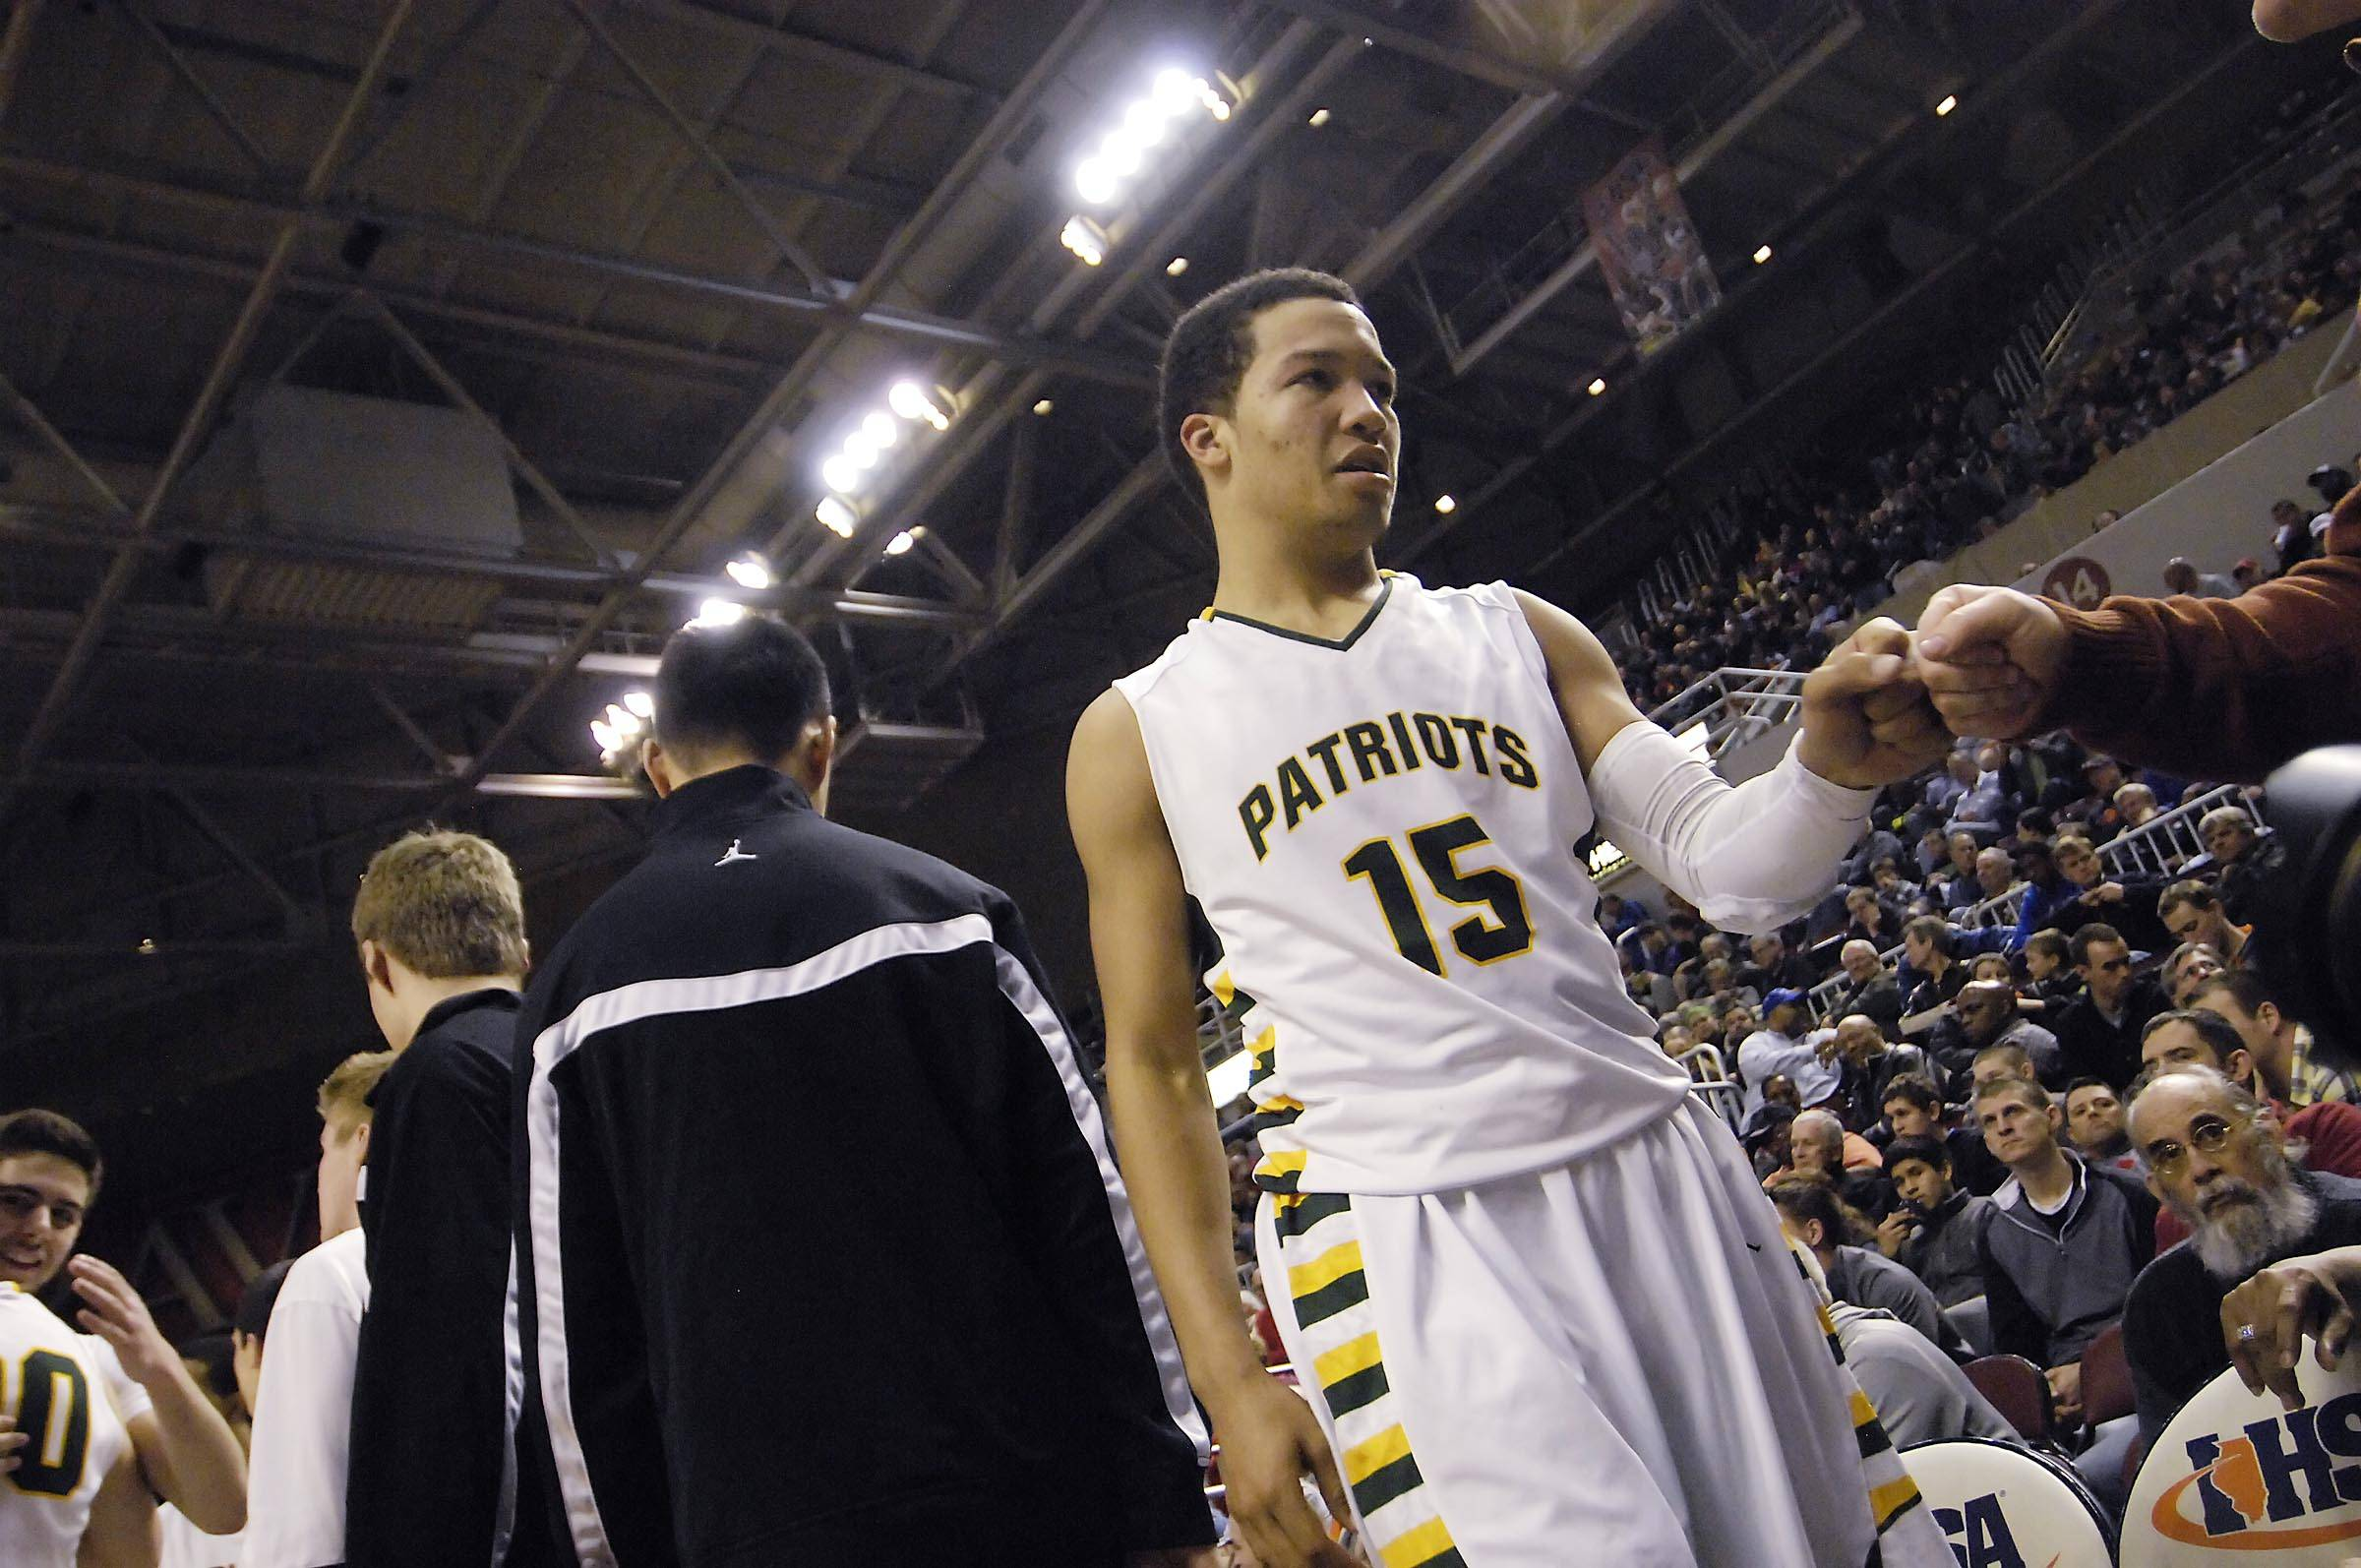 Stevenson's Jalen Brunson comes off the court in the final seconds of the Patriots' victory over Edwardsville in the Class 4A third-place game Saturday at Carver Arena.